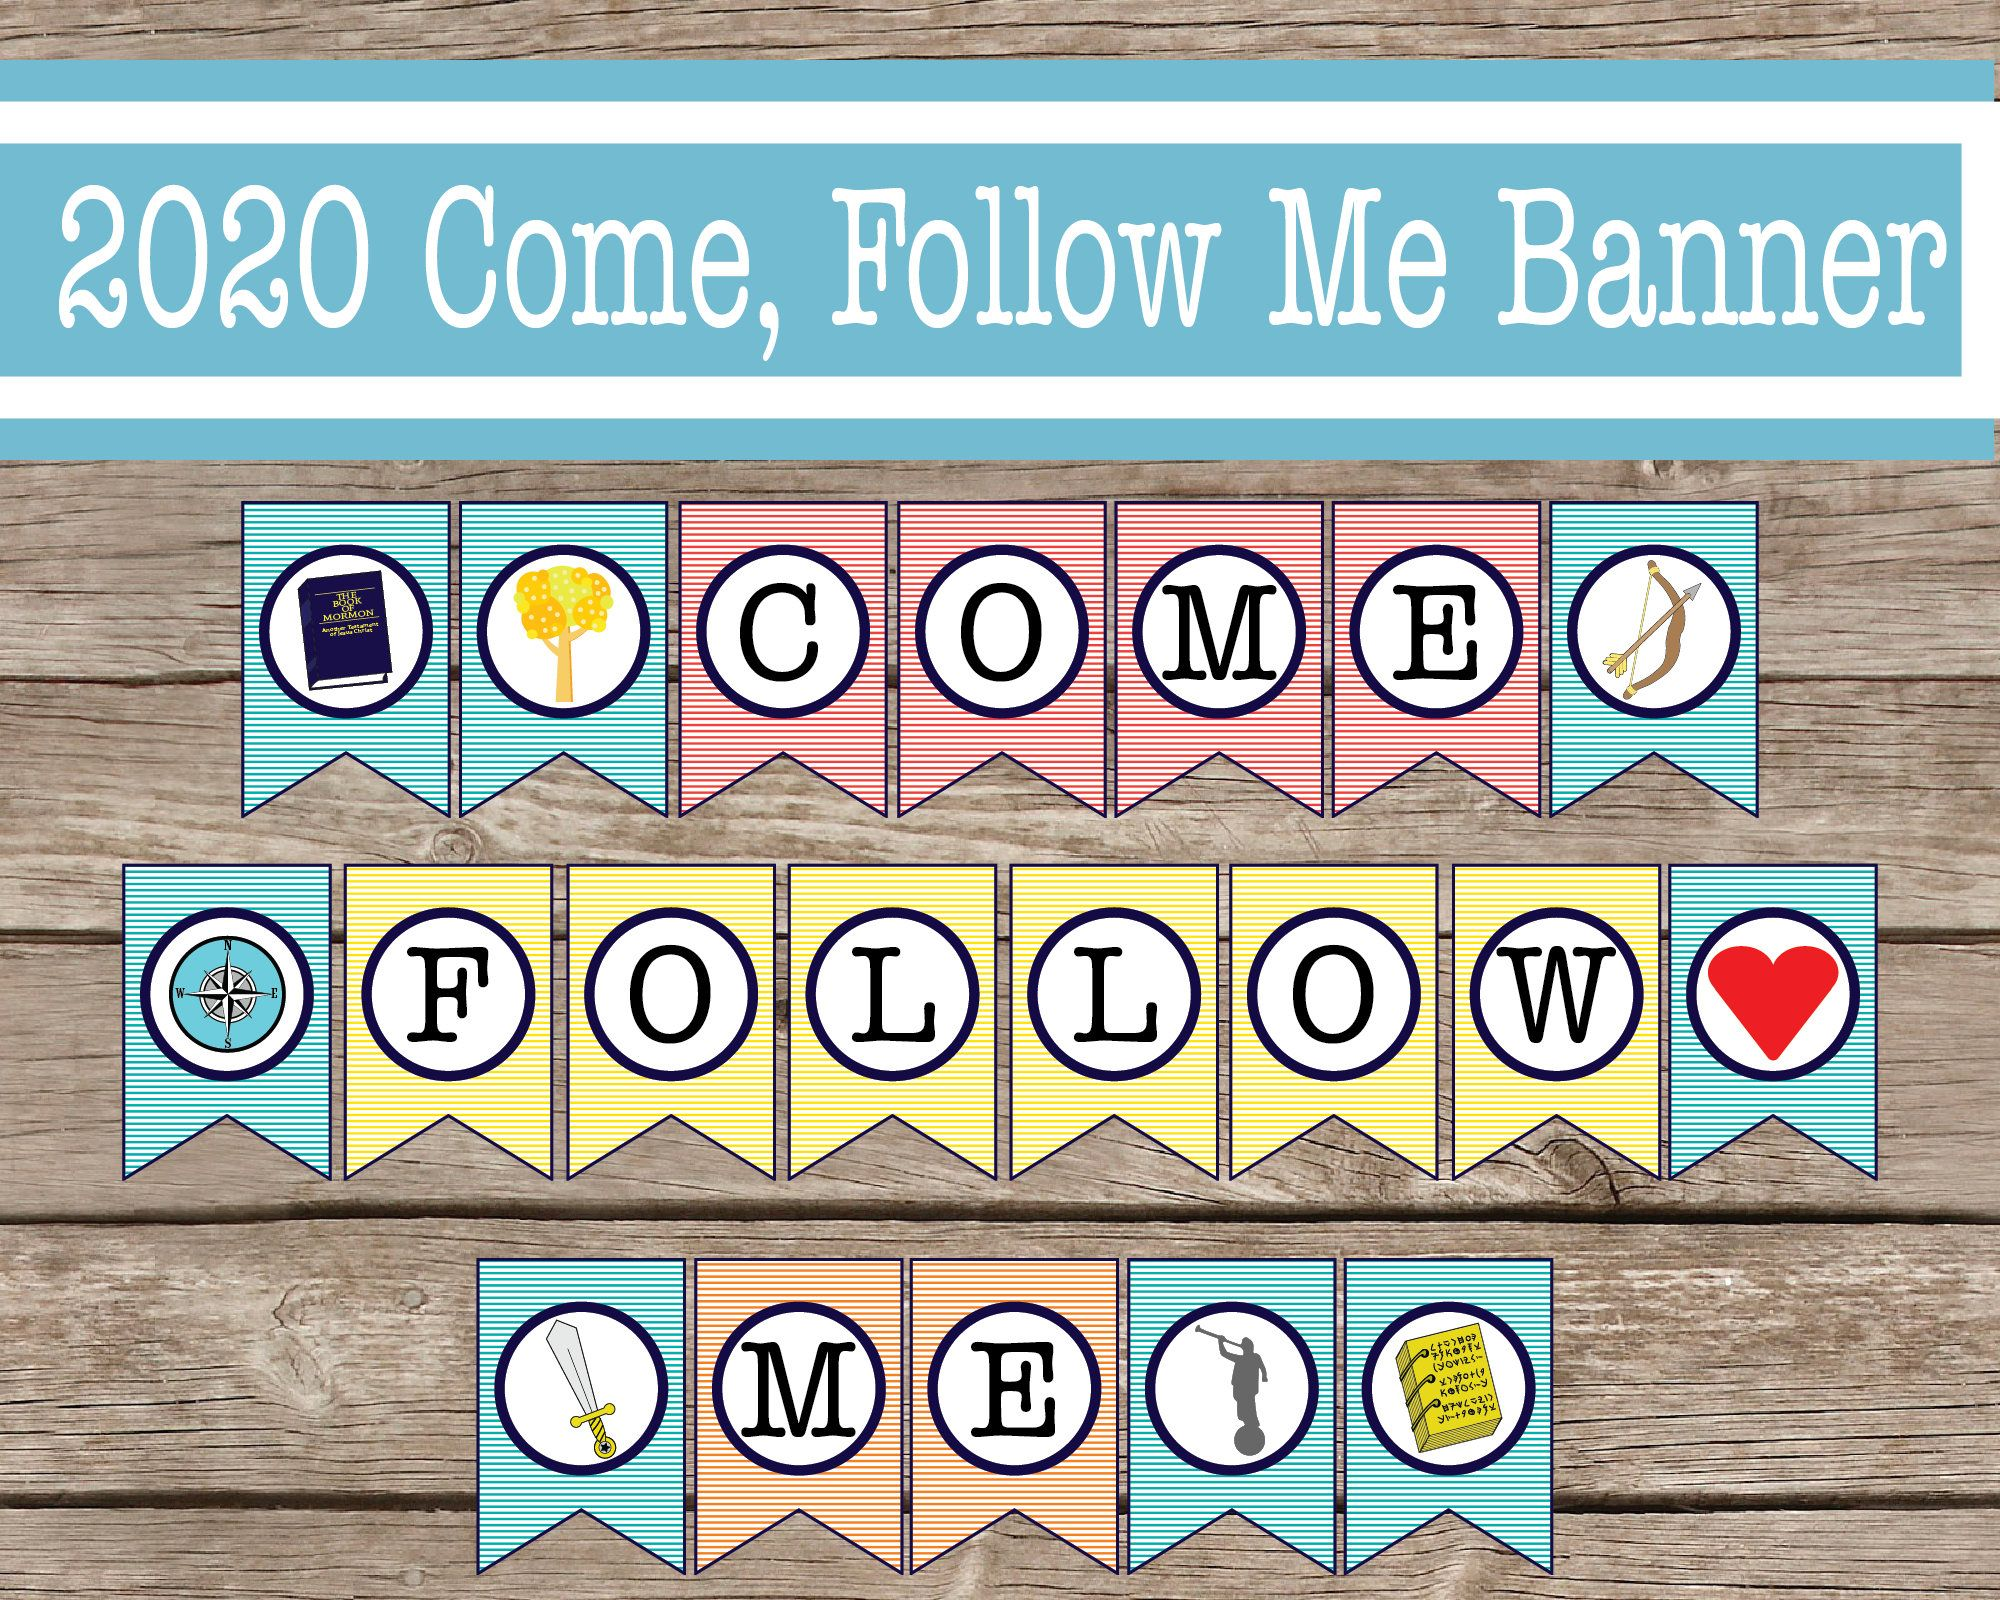 2020 come follow me banner; digital download; 8.5x11 inch